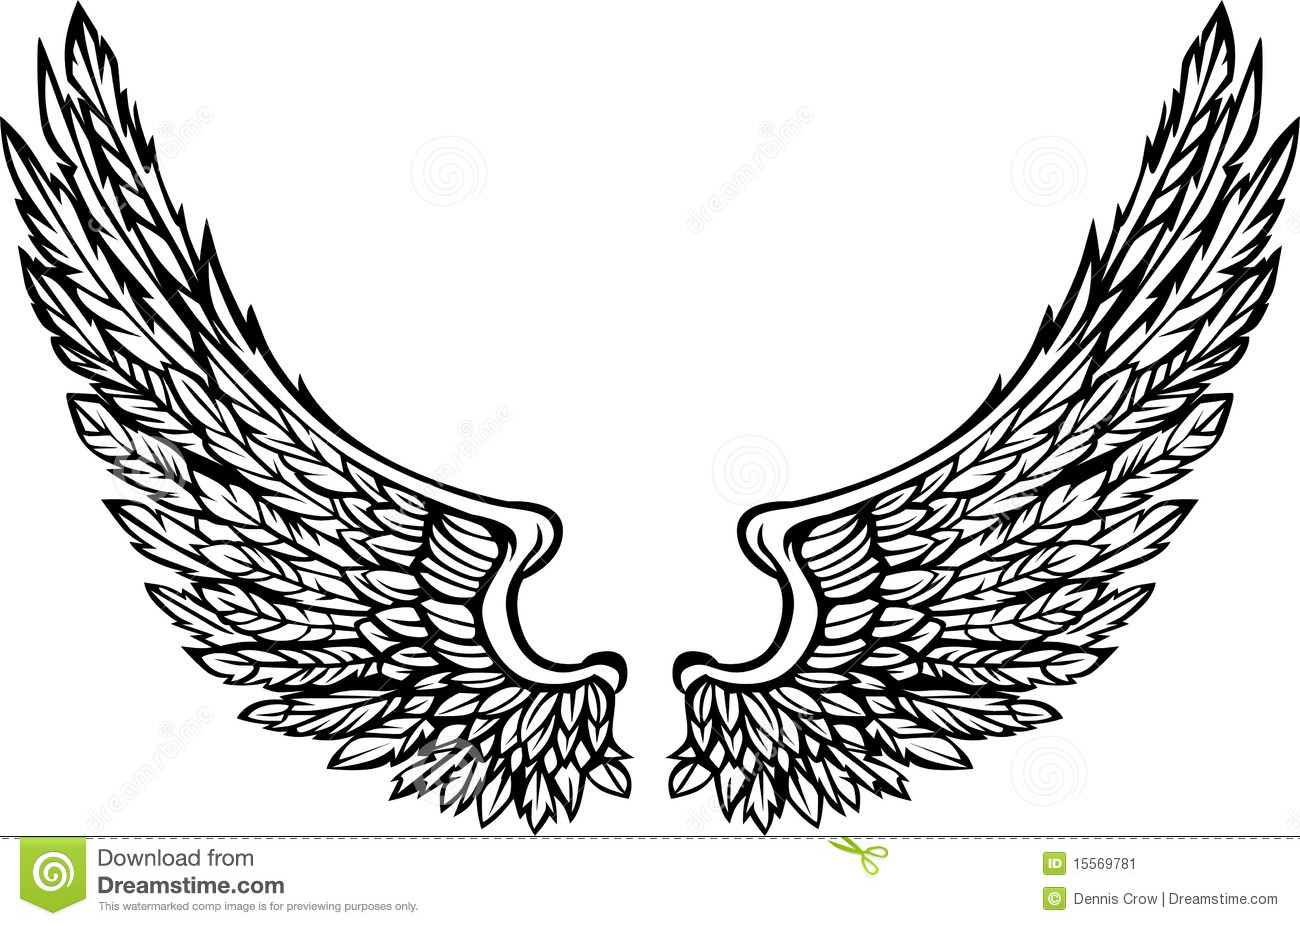 vector wings eagle graphic image stock vector illustration of wing design 15569781 dreamstime com